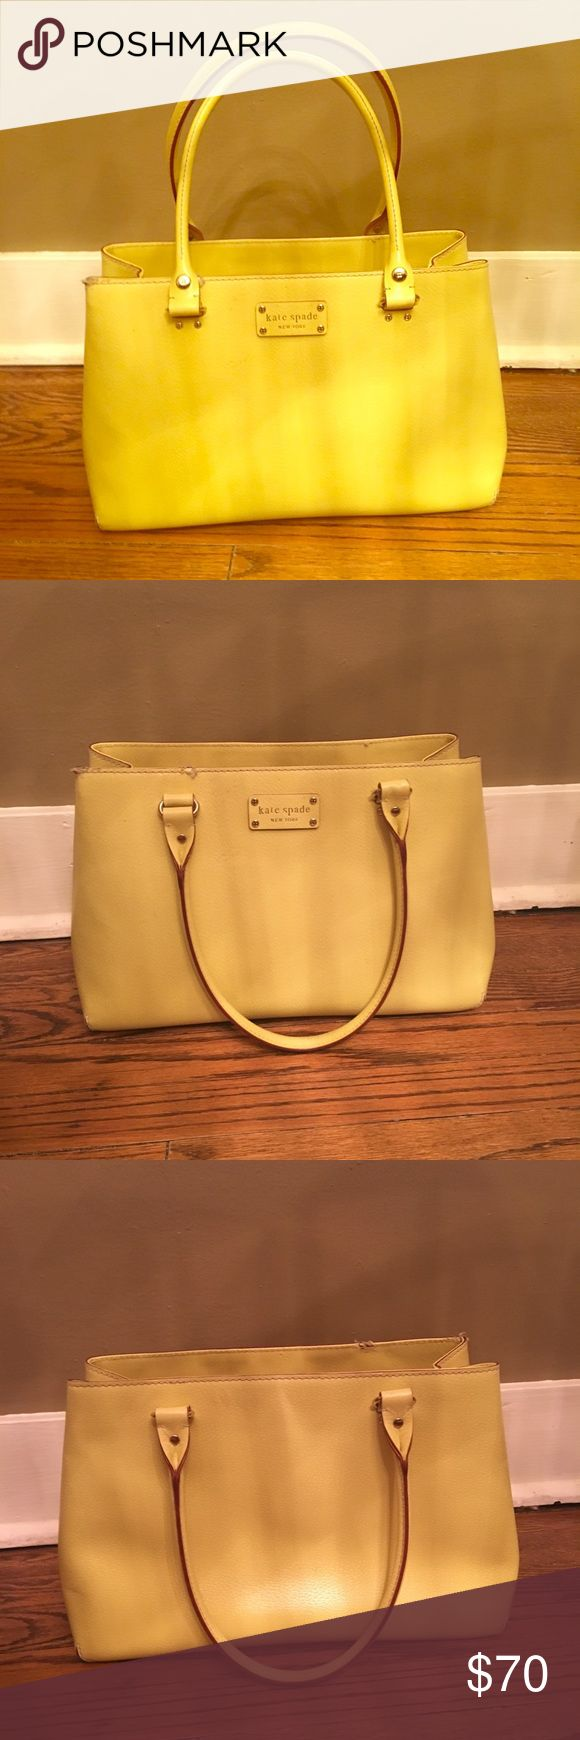 ♠️ Kate Spade Handbag ♠️ This gorgeous Kate Spade bag/purse is very bright yellow, almost neon (the first photo is the most accurate color). Beautiful pink and red polka dot silky interior that is VERY clean. Gently used, little to no wear. However when I first purchased this I had a puppy who gnawed on the front edge in two spots!! The last photo is a closeup but honestly it's not that bad (reflected in price). kate spade Bags Shoulder Bags